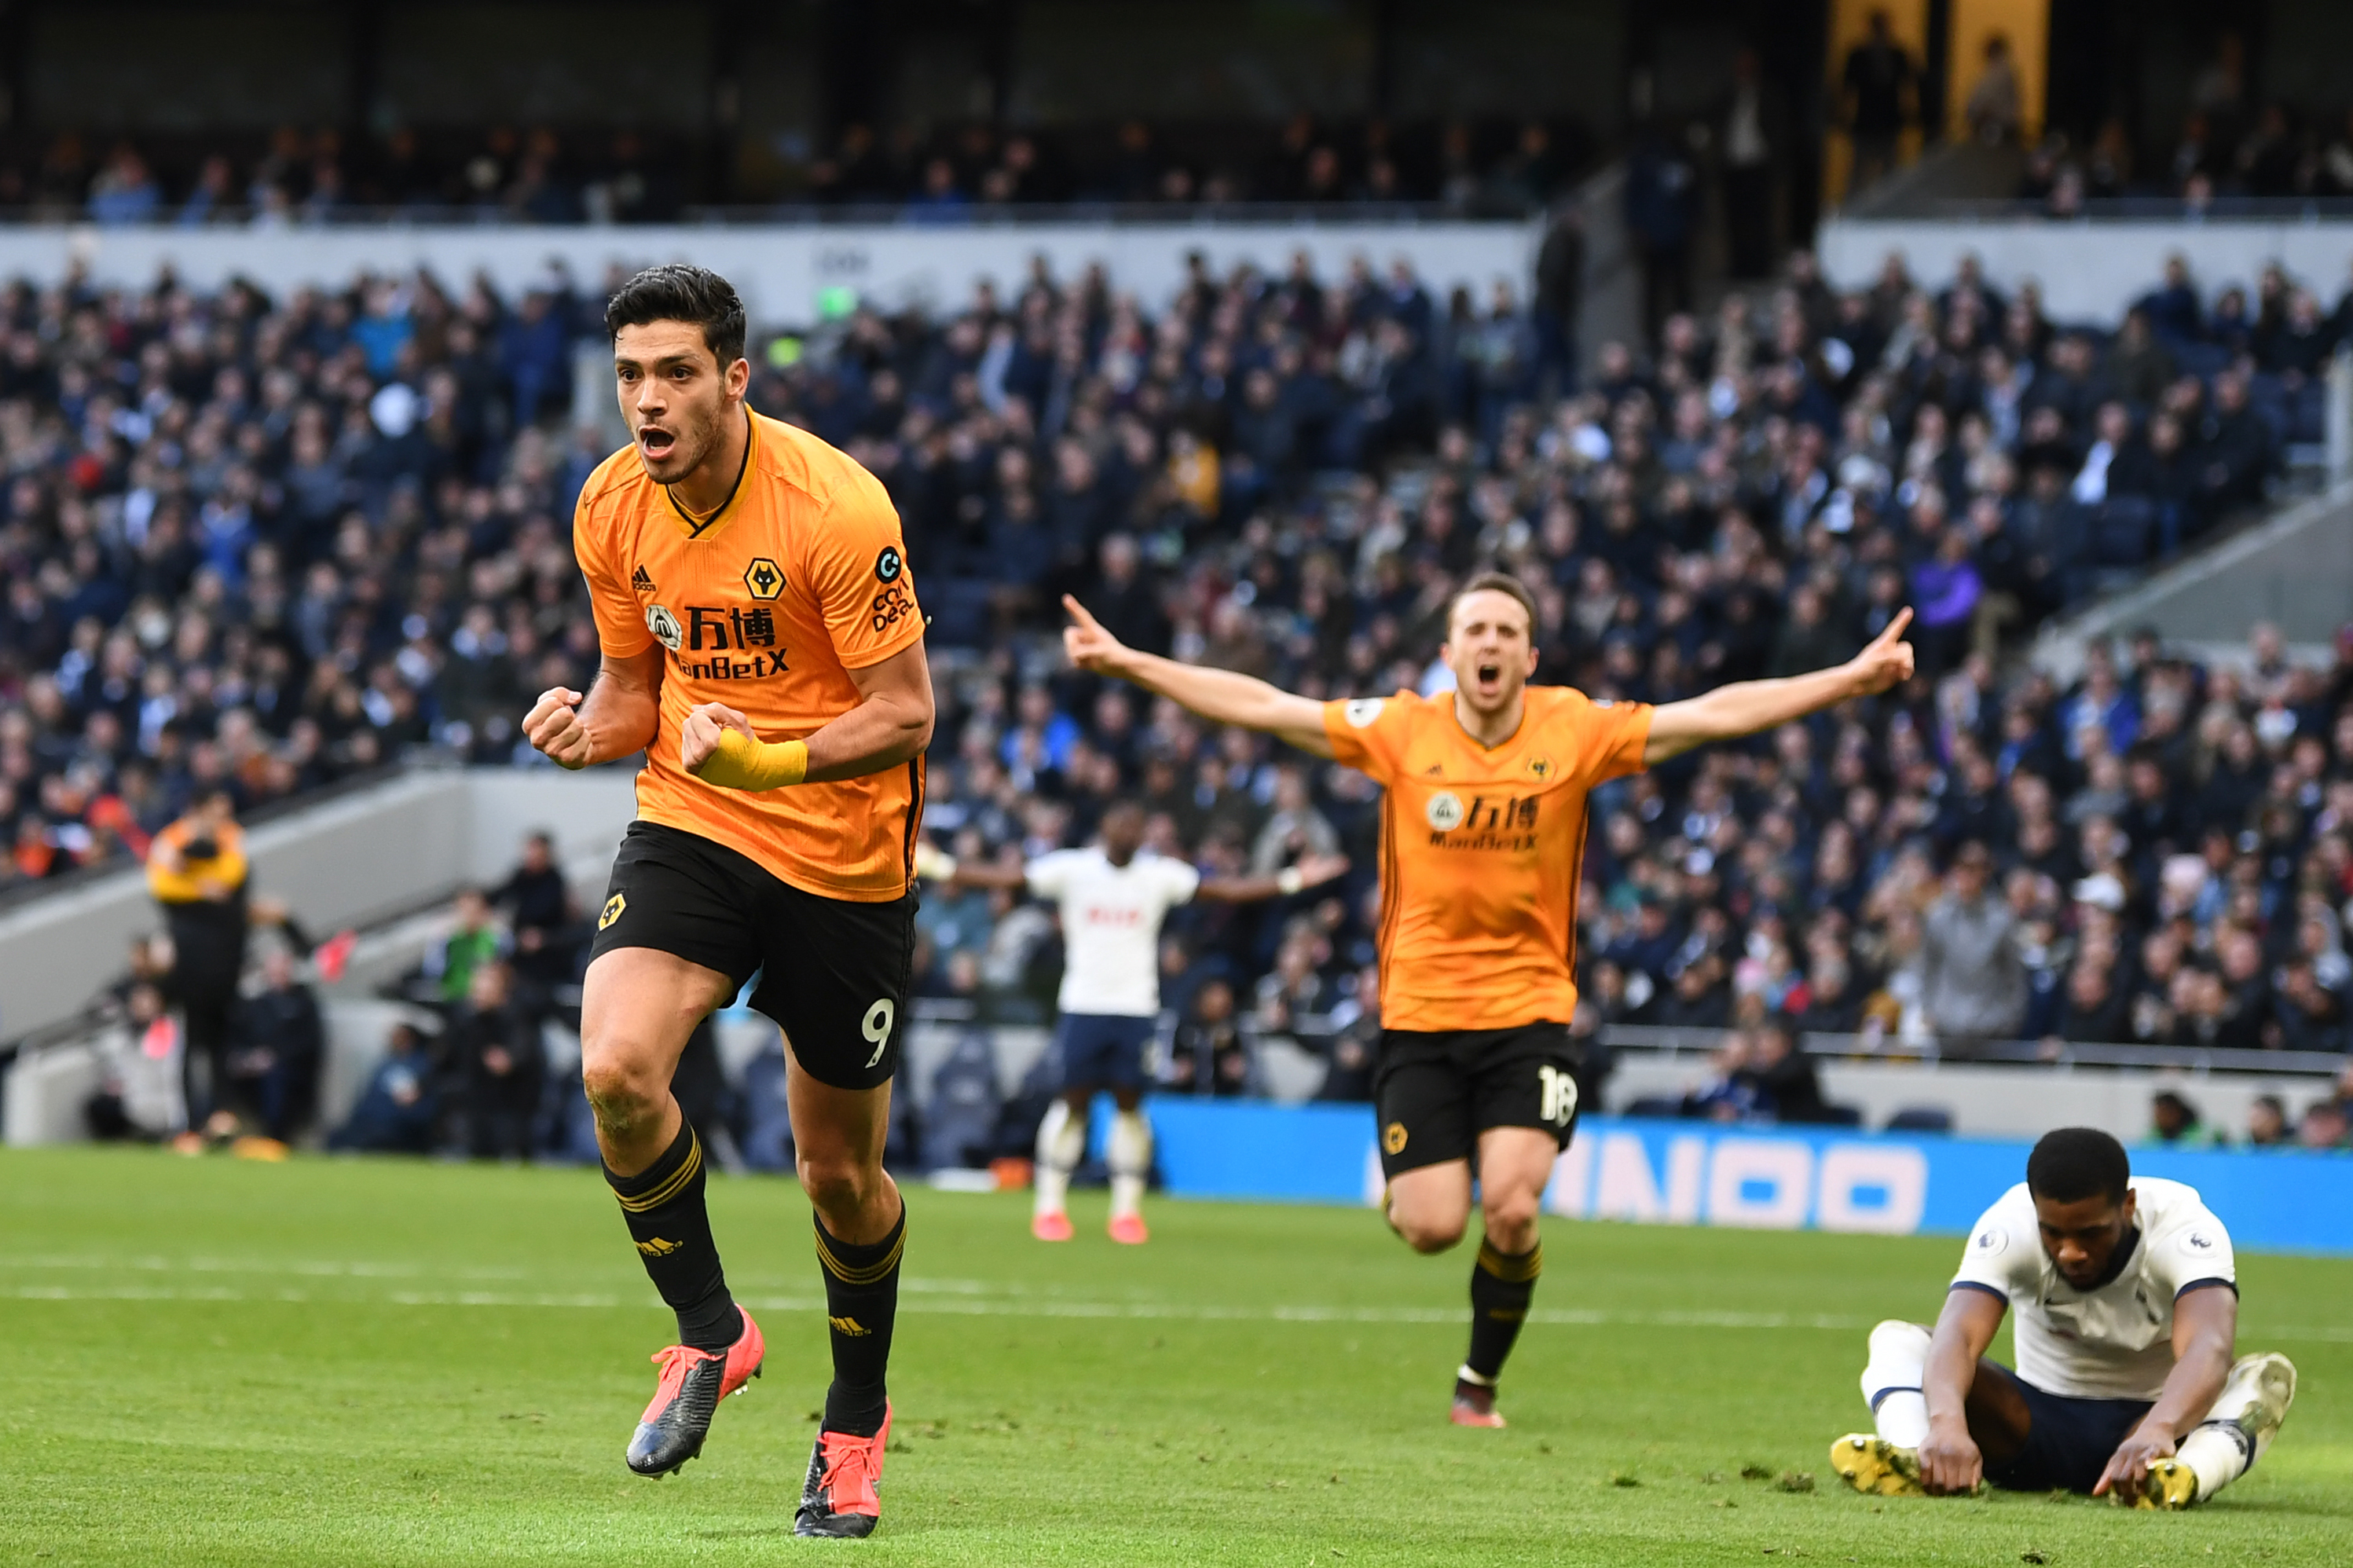 3-4-3 Wolves Predicted Lineup Vs Aston Villa (Wolves players celebrating in the photo)